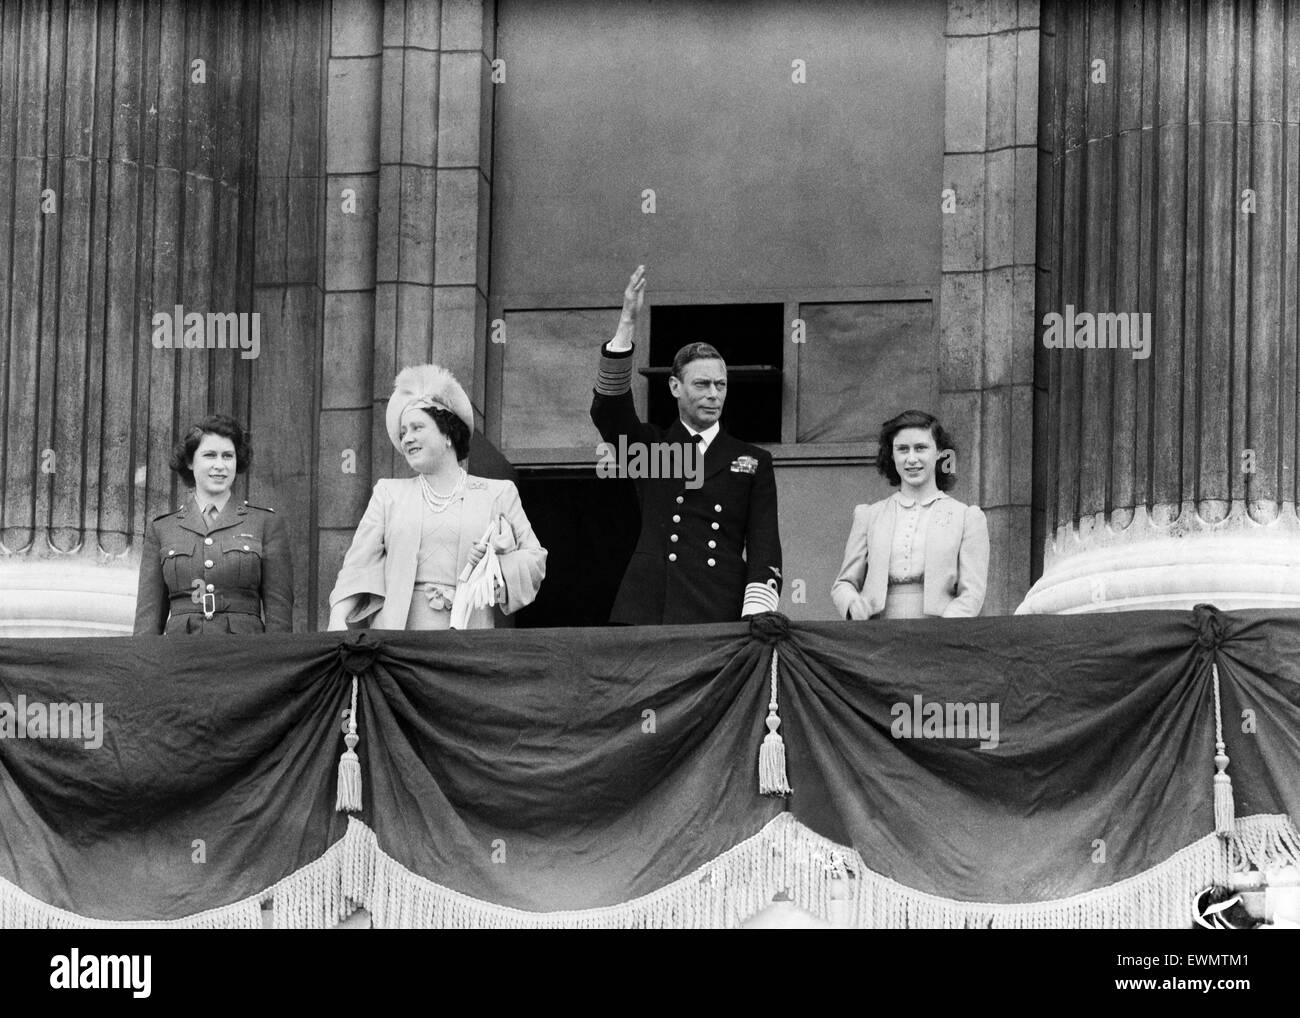 VE Day celebrations in London at the end of the Second World War.  King George VI waves to the crowd from  the balcony - Stock Image